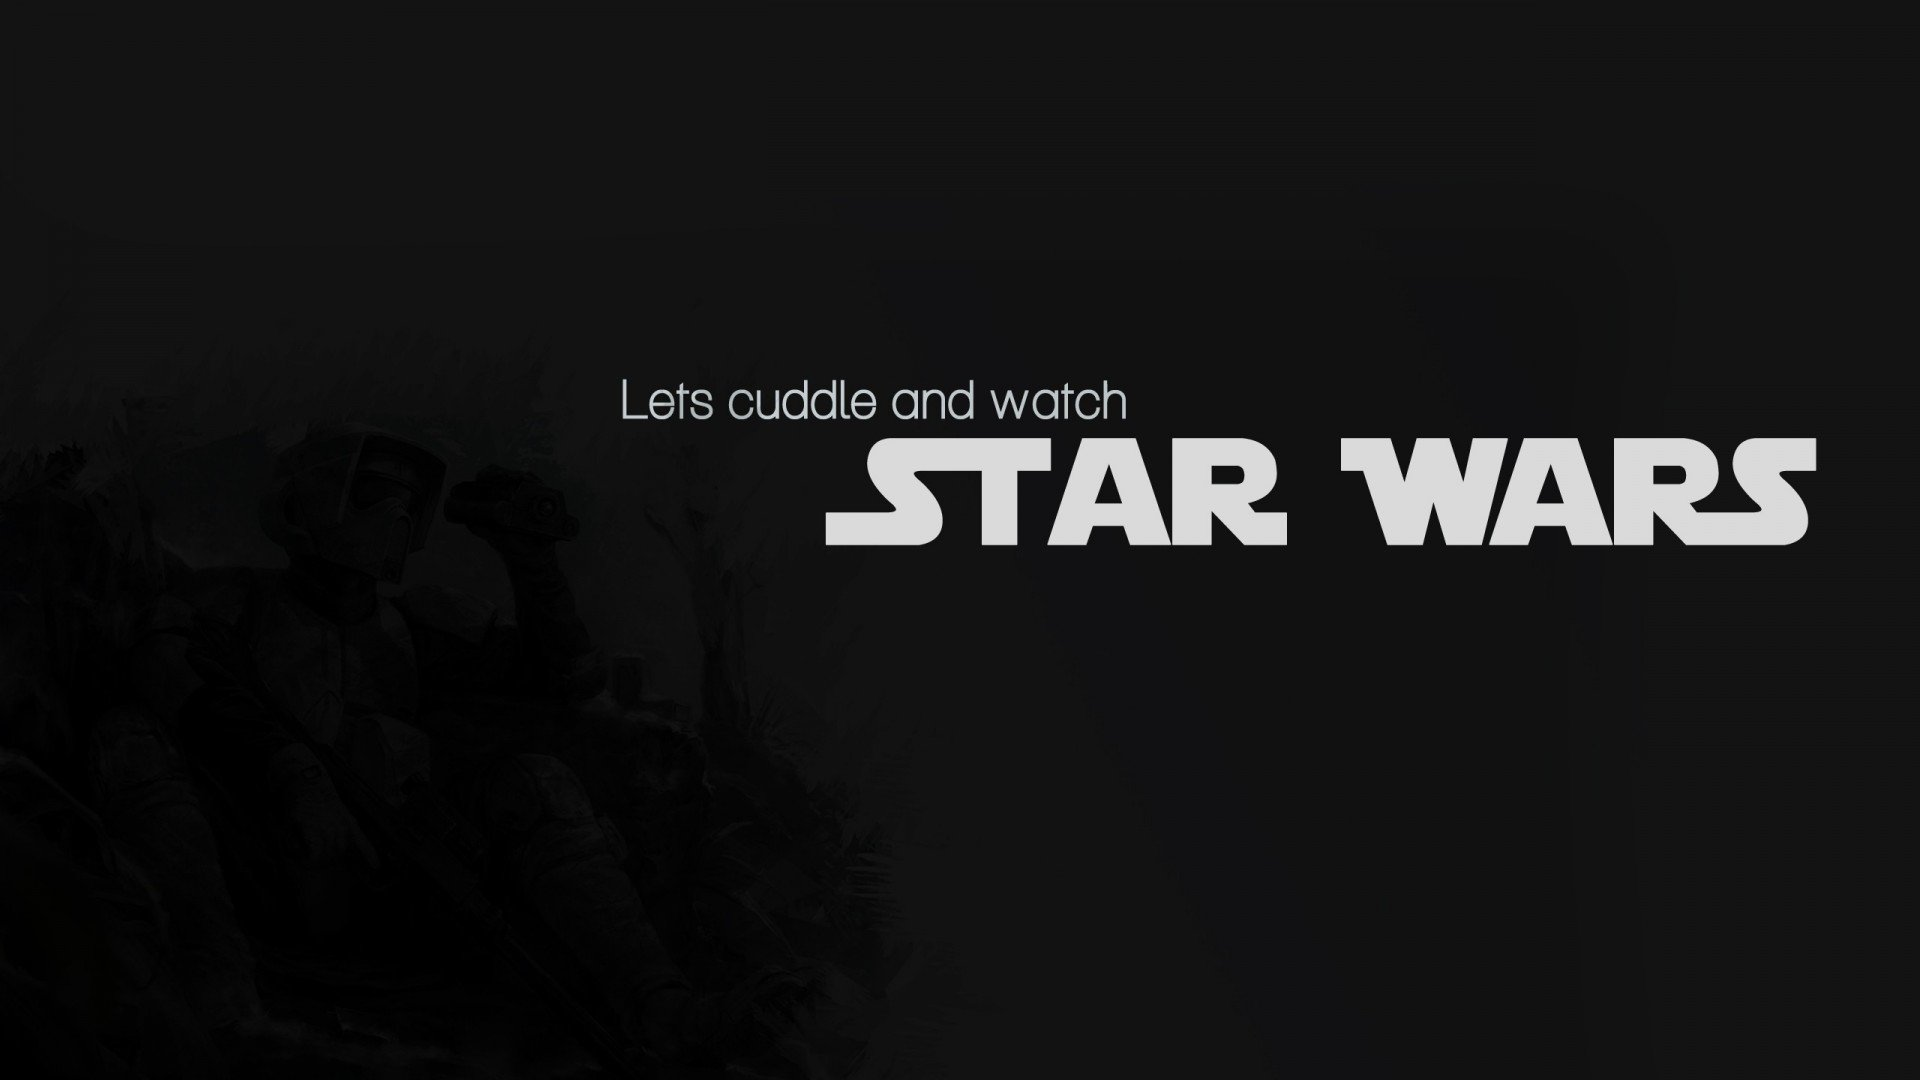 71 funny star wars wallpapers on wallpapersafari - Star wars quotes wallpaper ...